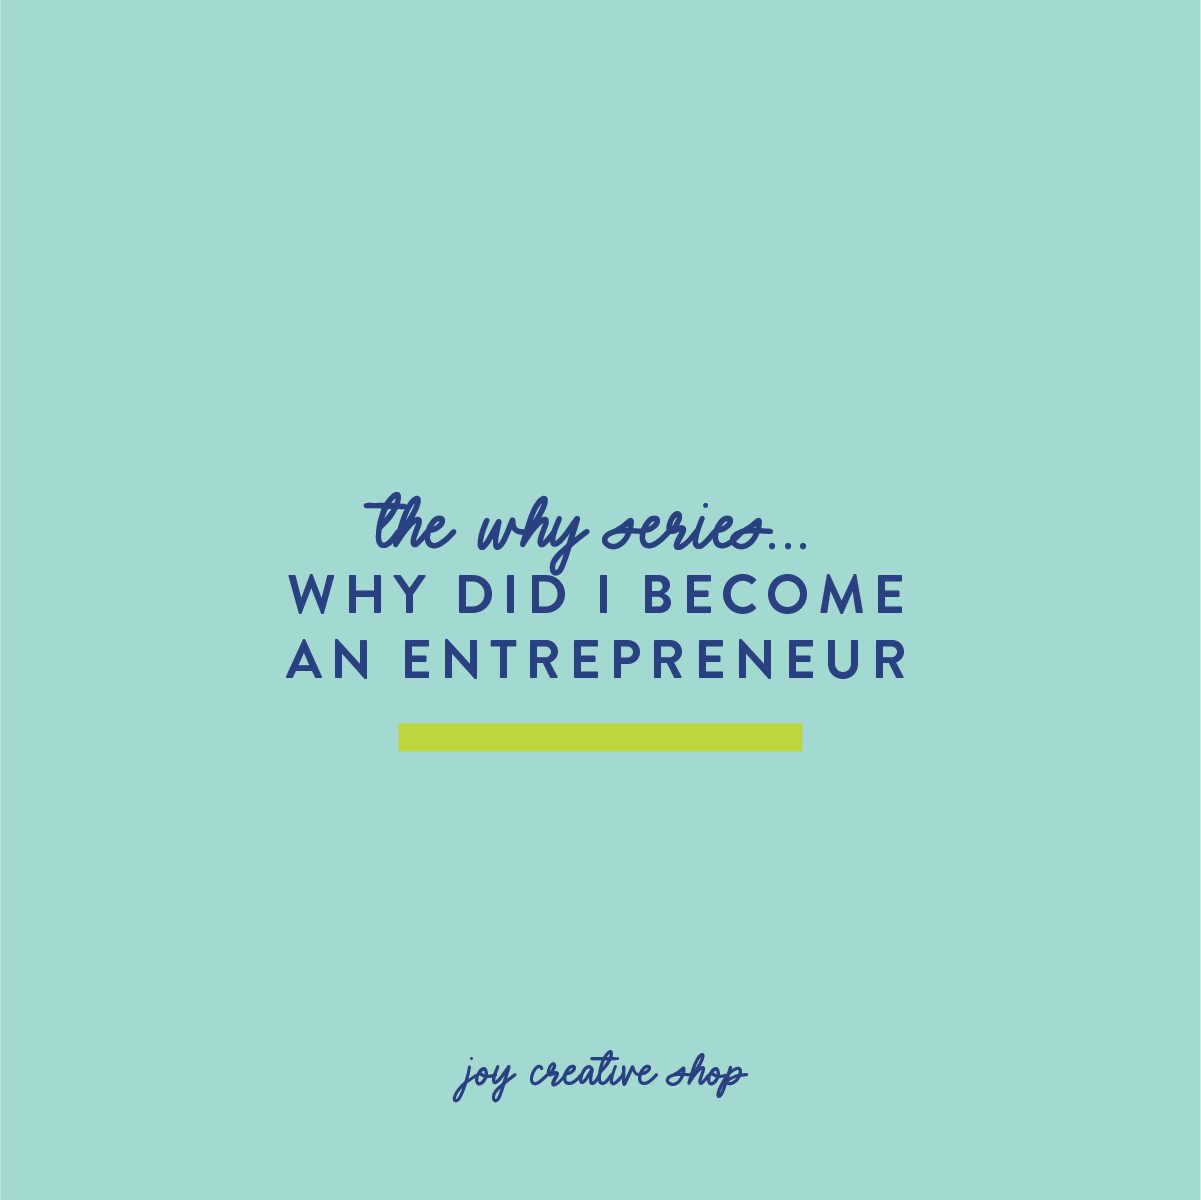 Why Did I Become an Entrepreneur?